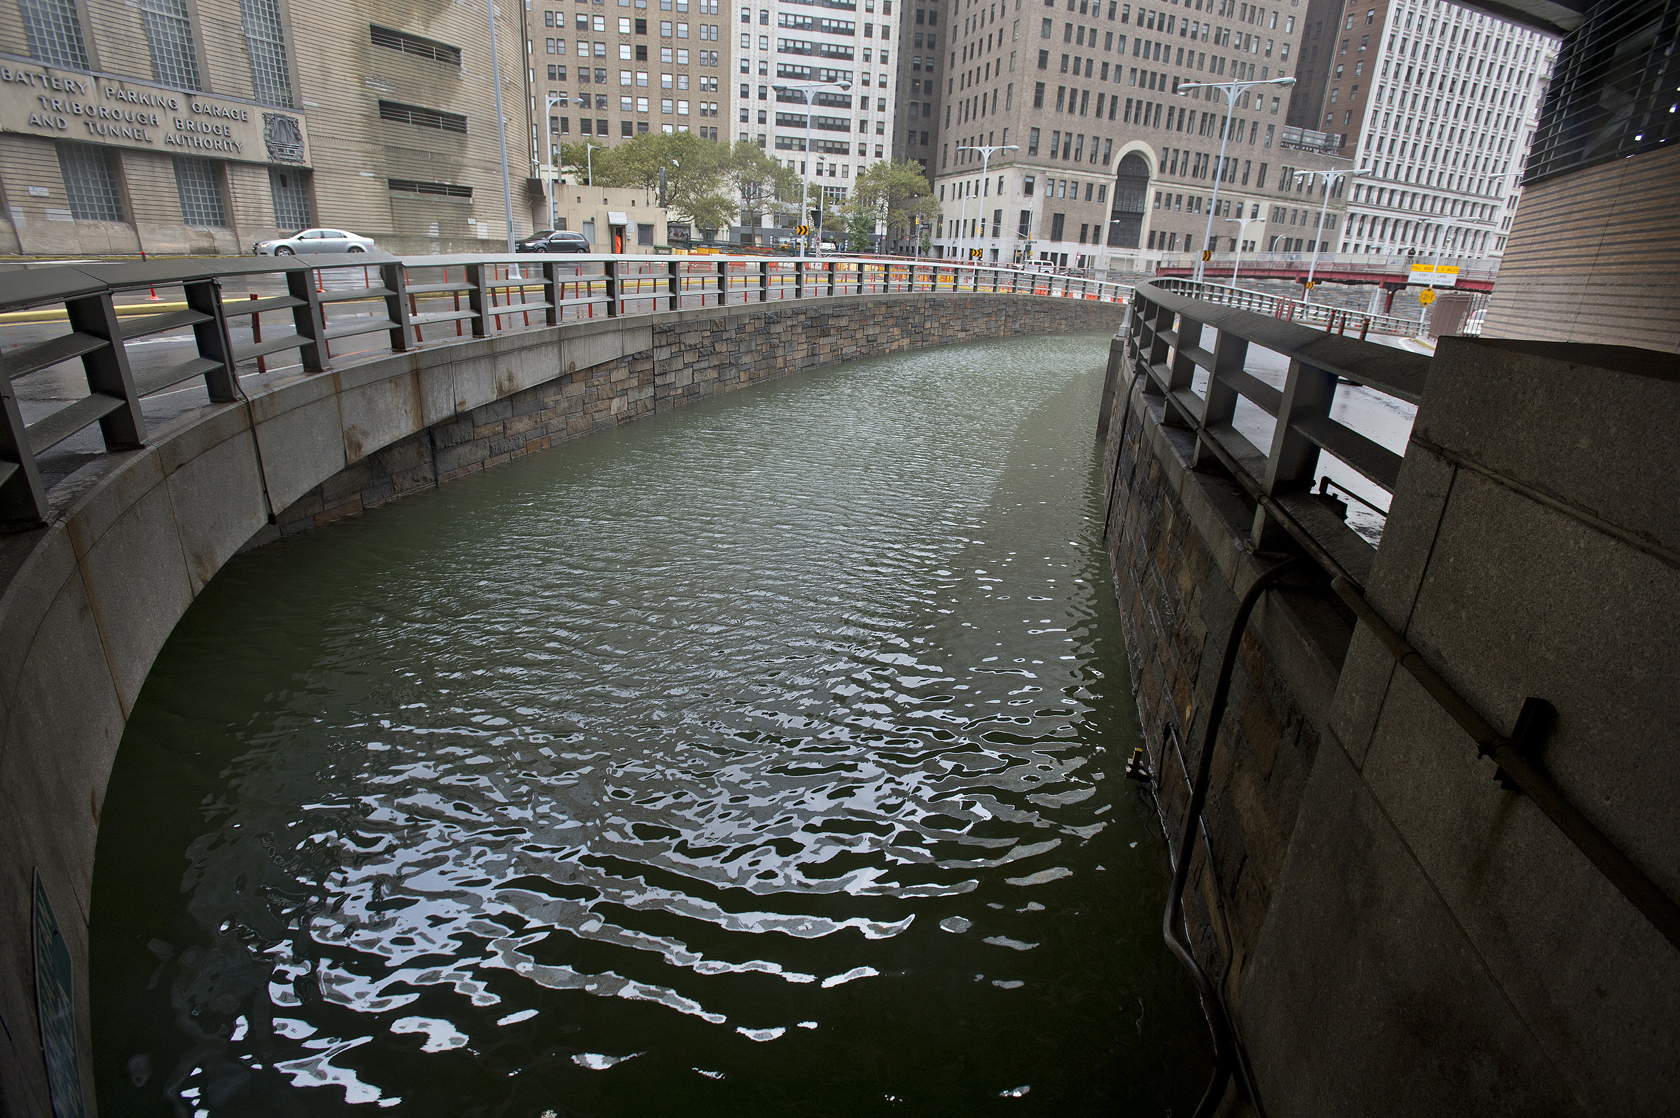 The Hugh L. Carey Tunnel, which connects Manhattan and Brooklyn, during the flooding resulting from Superstorm Sandy in 2012. Photo: Metropolitan Transit Authority